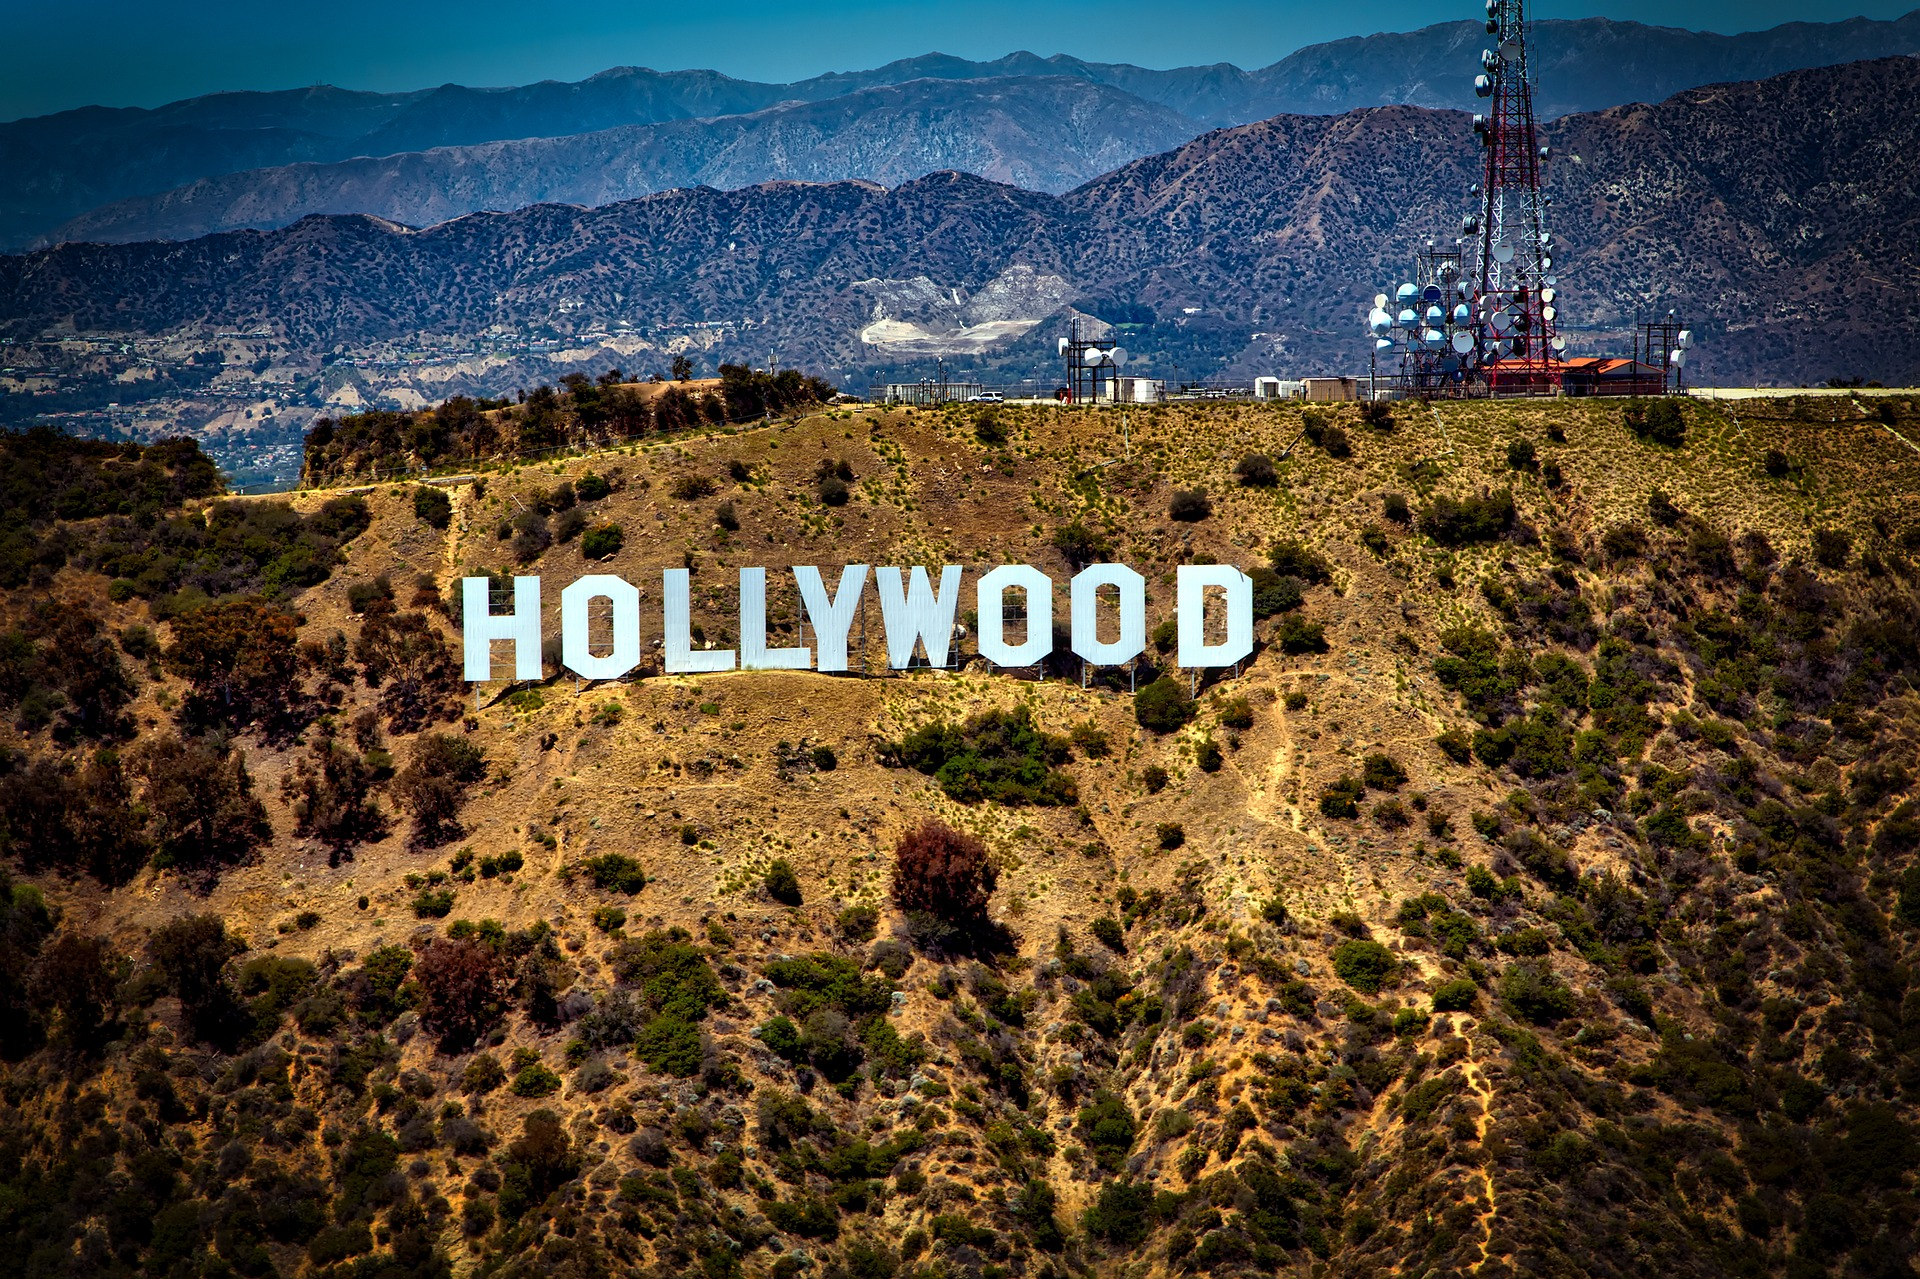 http://aktsa.org/img_2019/images/hollywood-sign-1598473_1920.jpg